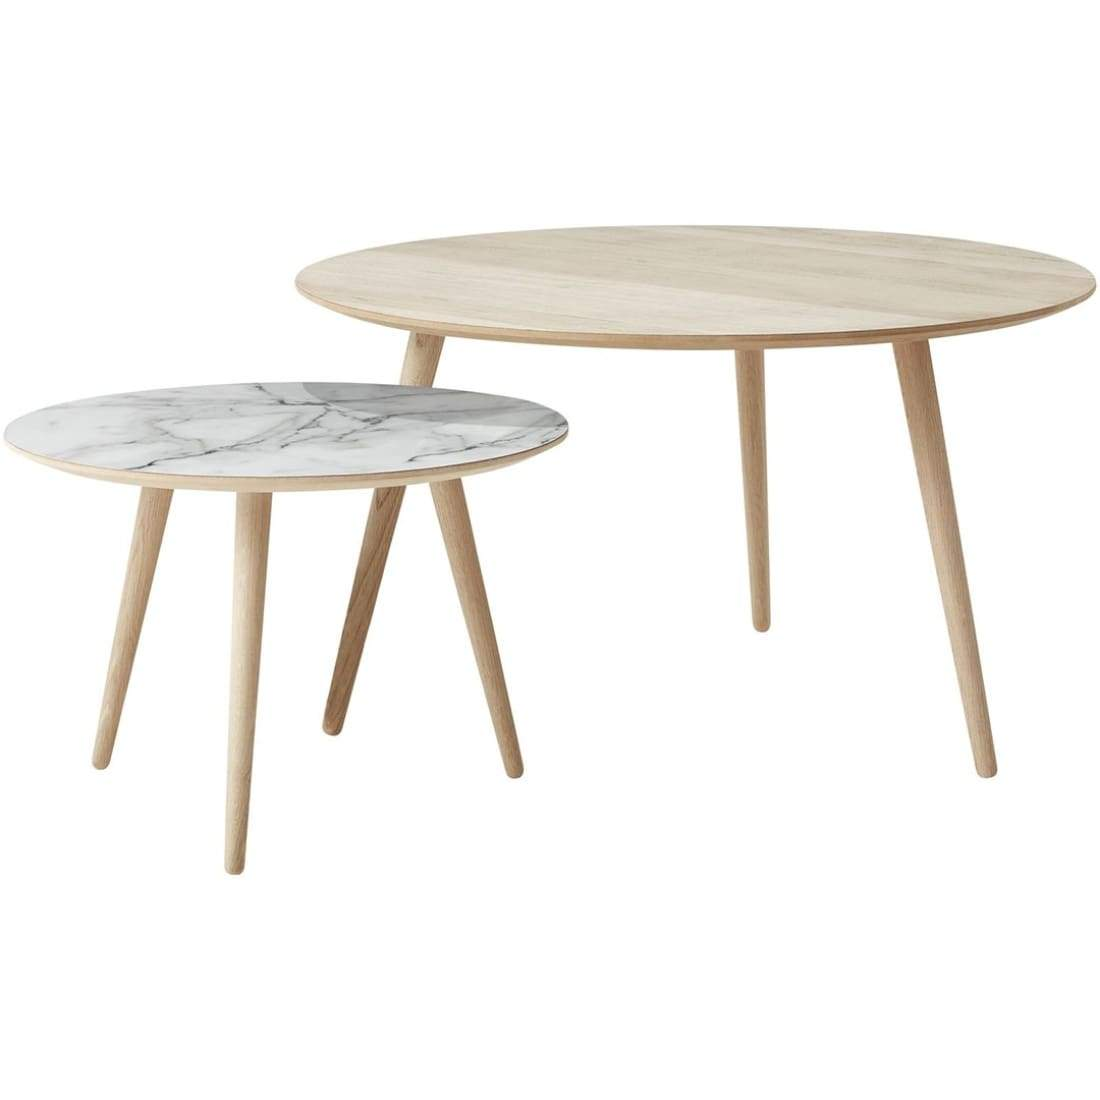 Bornholm Coffee Table - Oak - BoConcept Bay Area Online Store